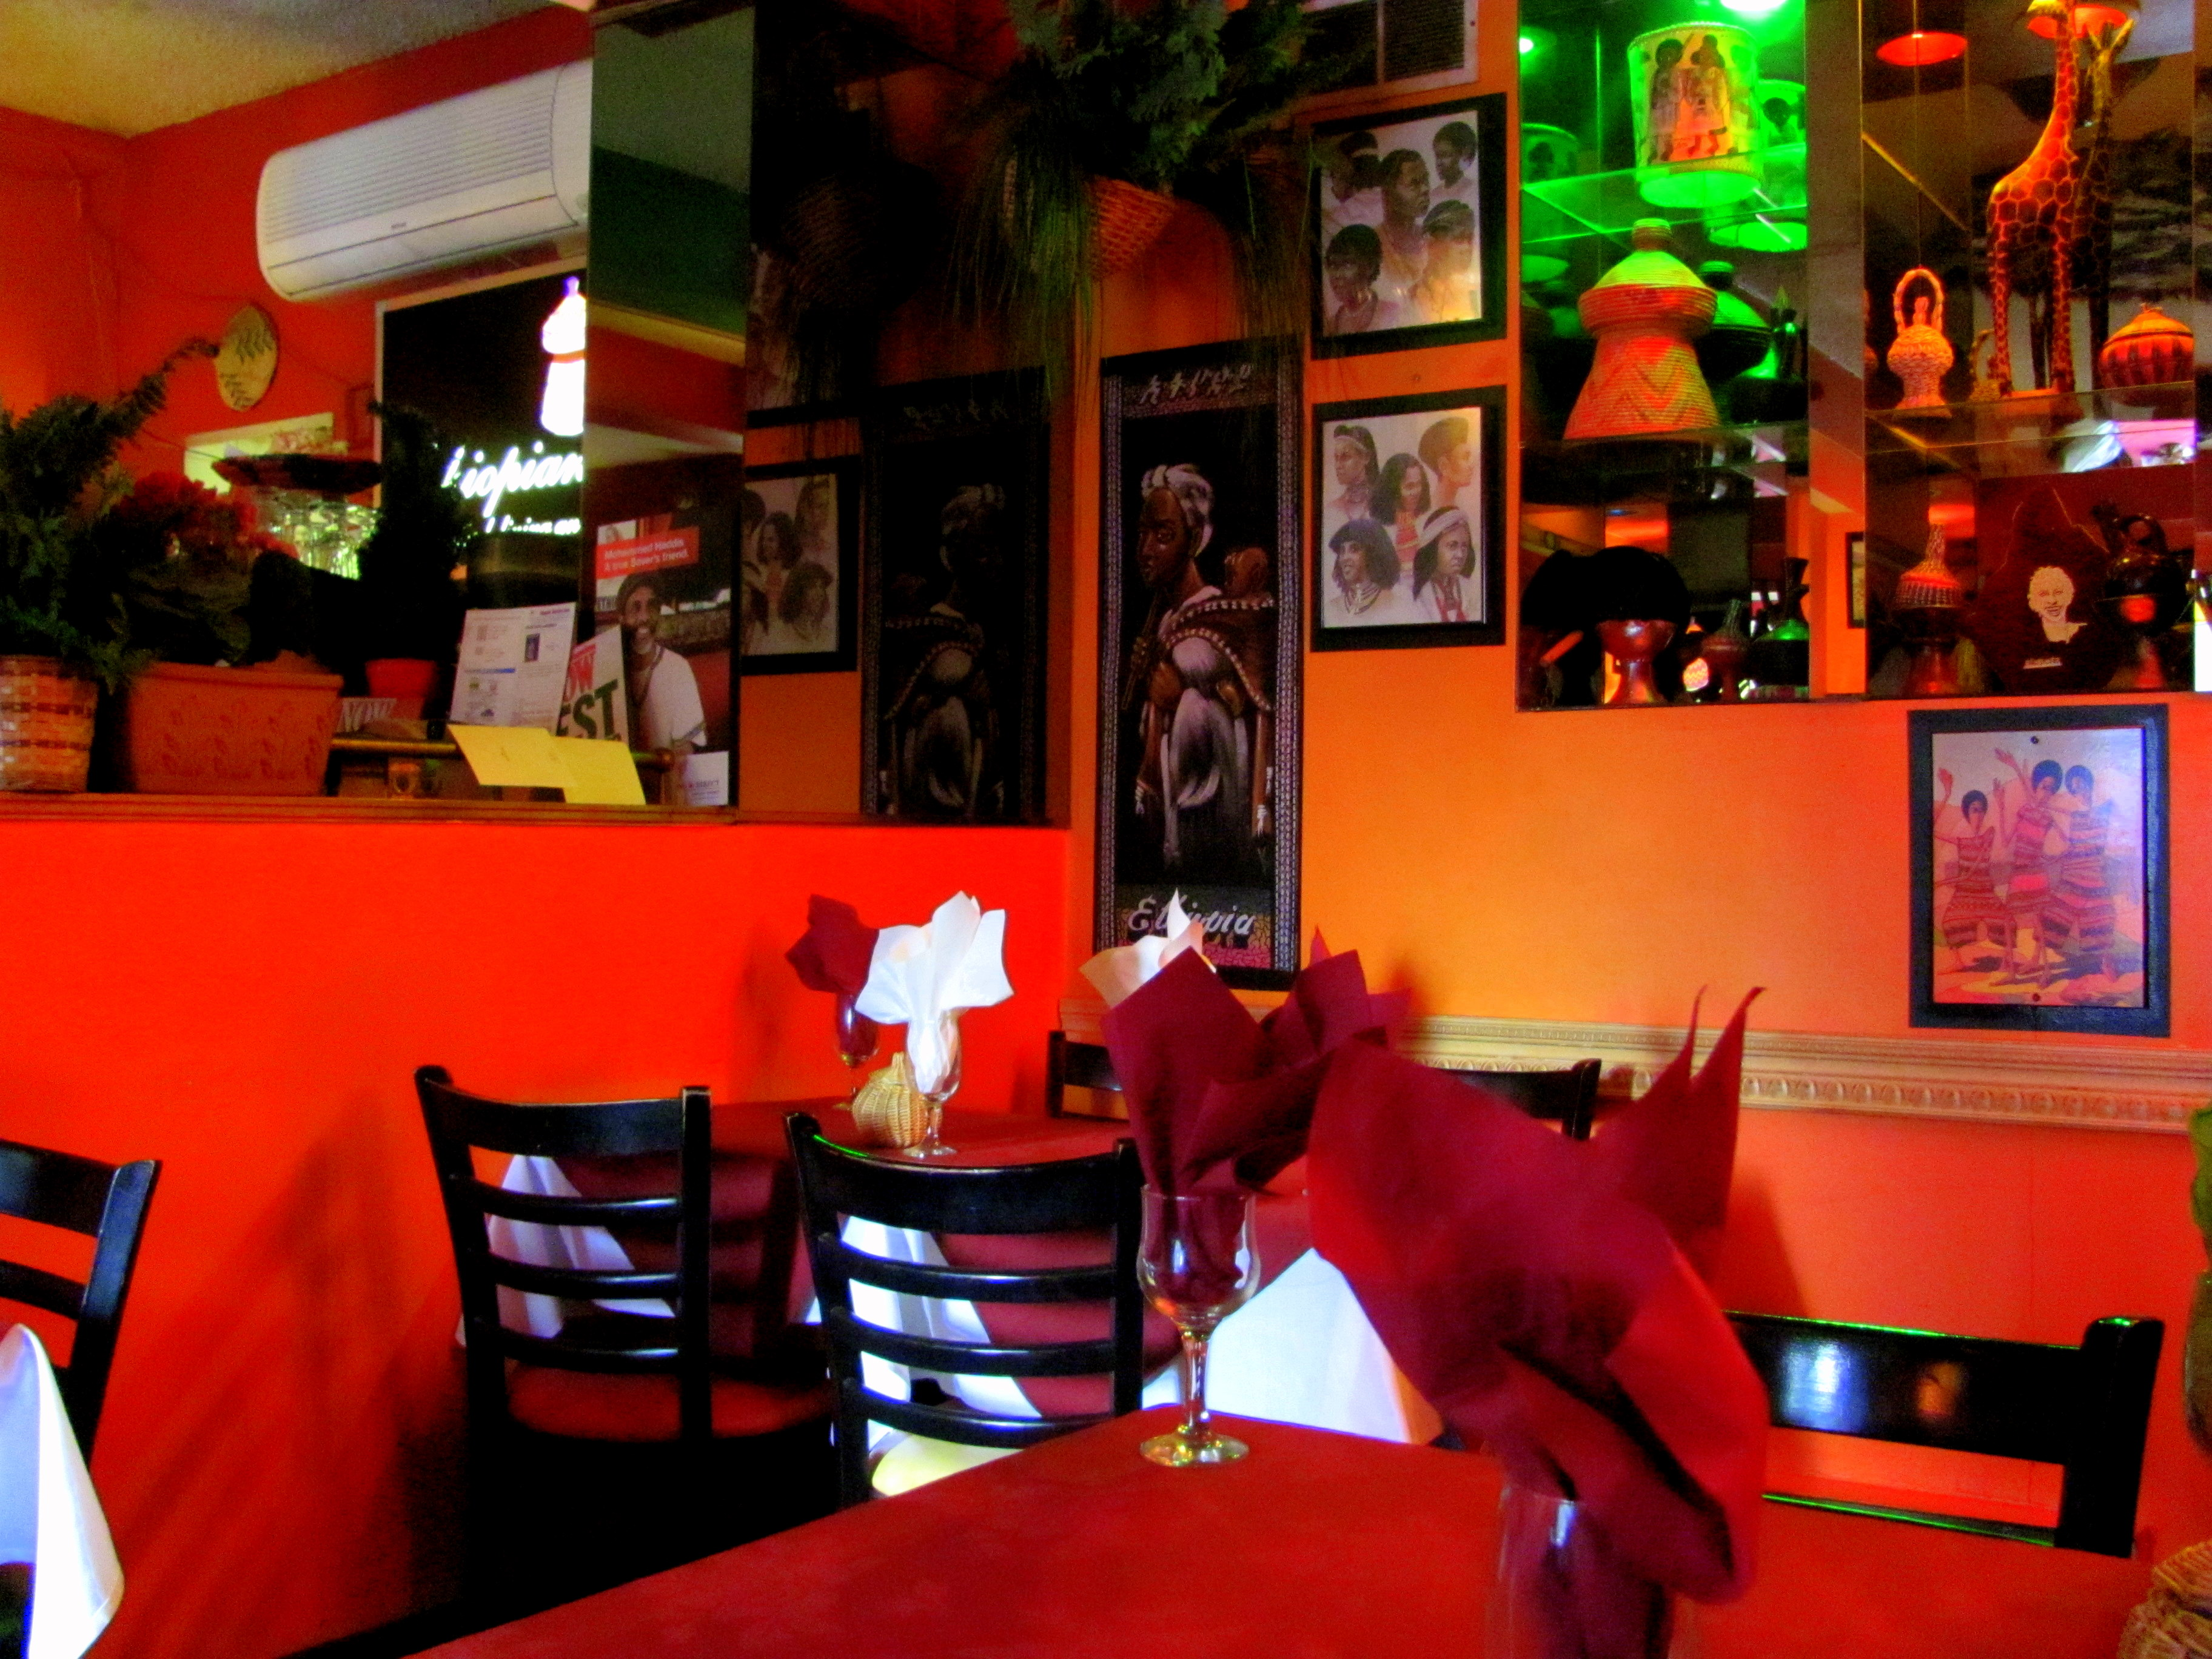 toronto restaurant ethiopian house dr talia marcheggiani nd an ethiopian meal consists of a large plate full of spicy colourful stews made of legumes vegetables and sometimes meats the plate resembling an